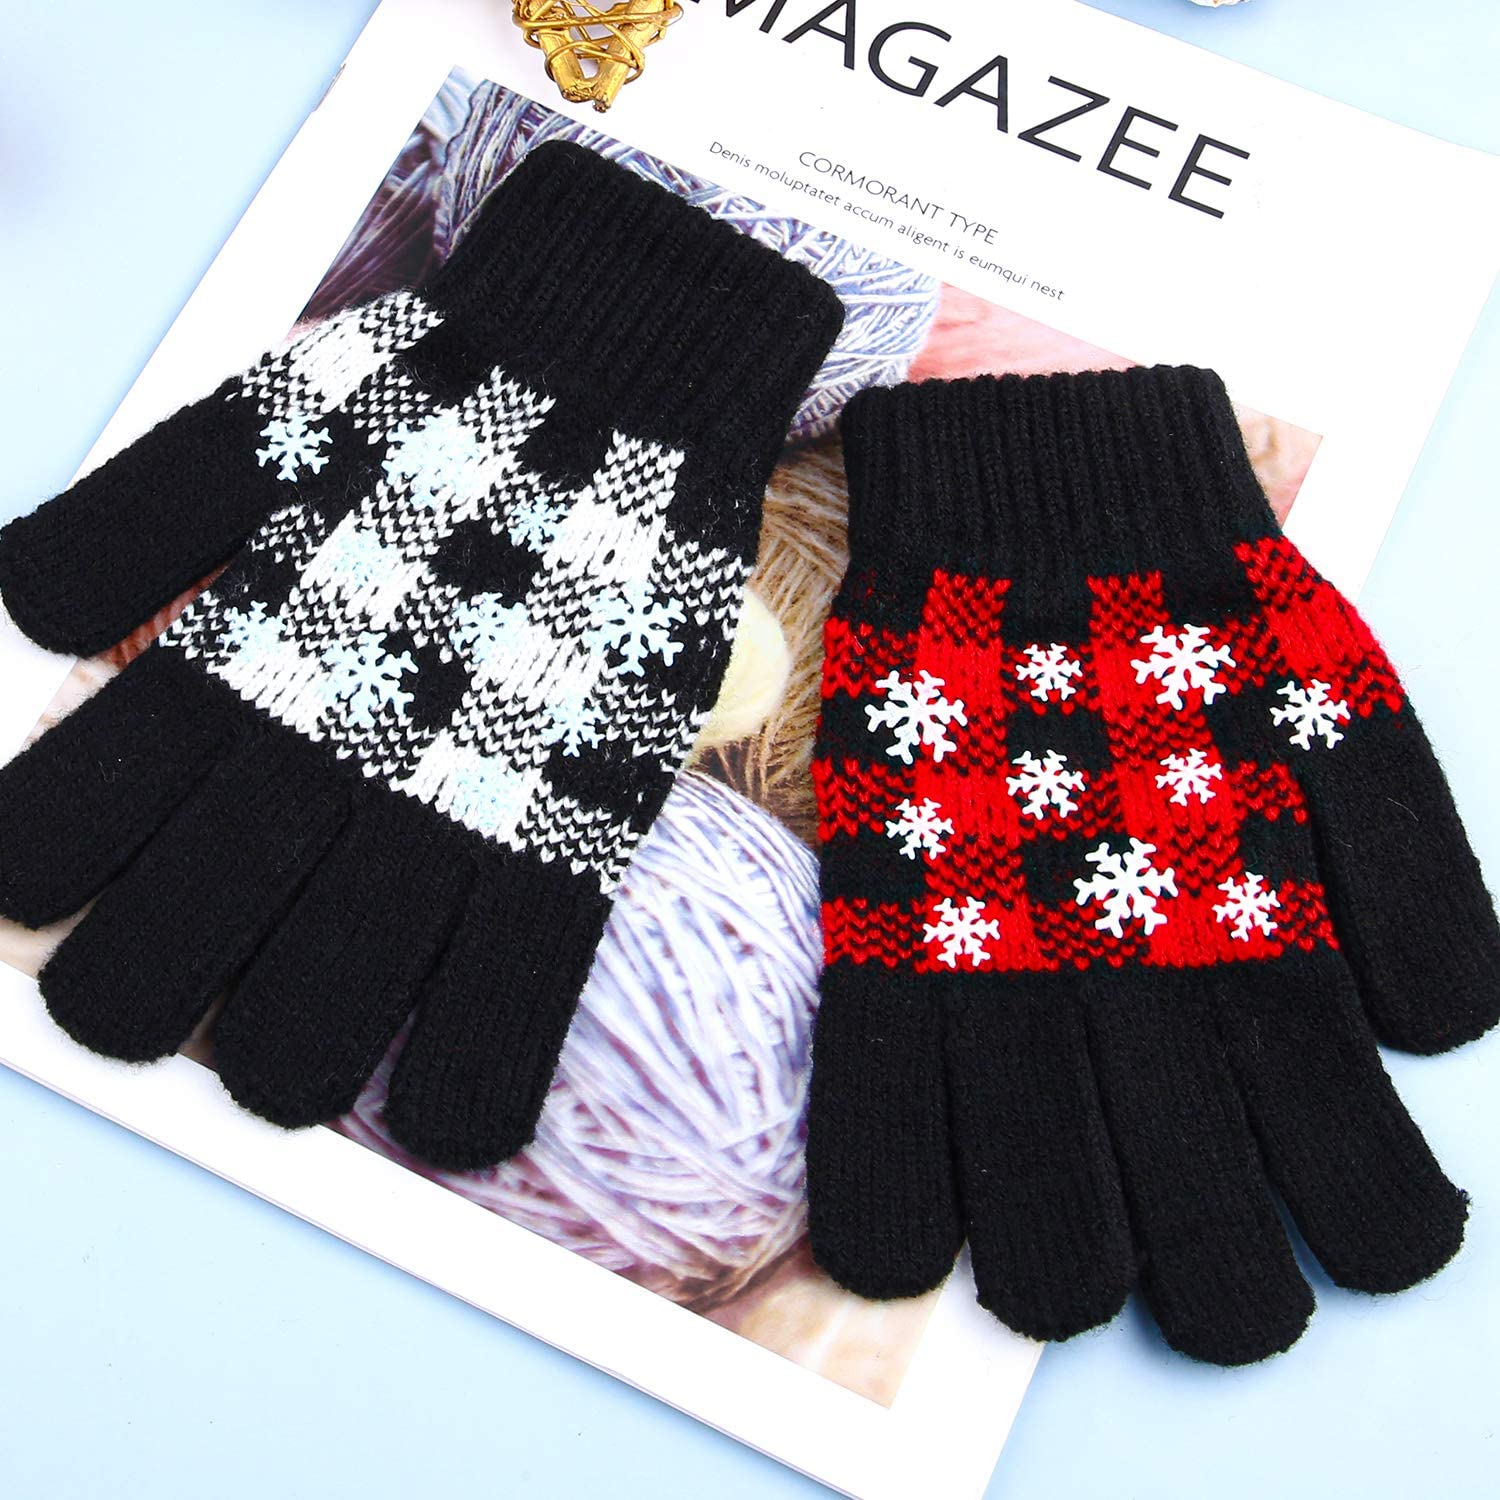 Cooraby 12 Packs Christmas Kids Winter Gloves Magic Stretch Gloves Warm Knitted Gloves for Boys and Girls Christmas Favor